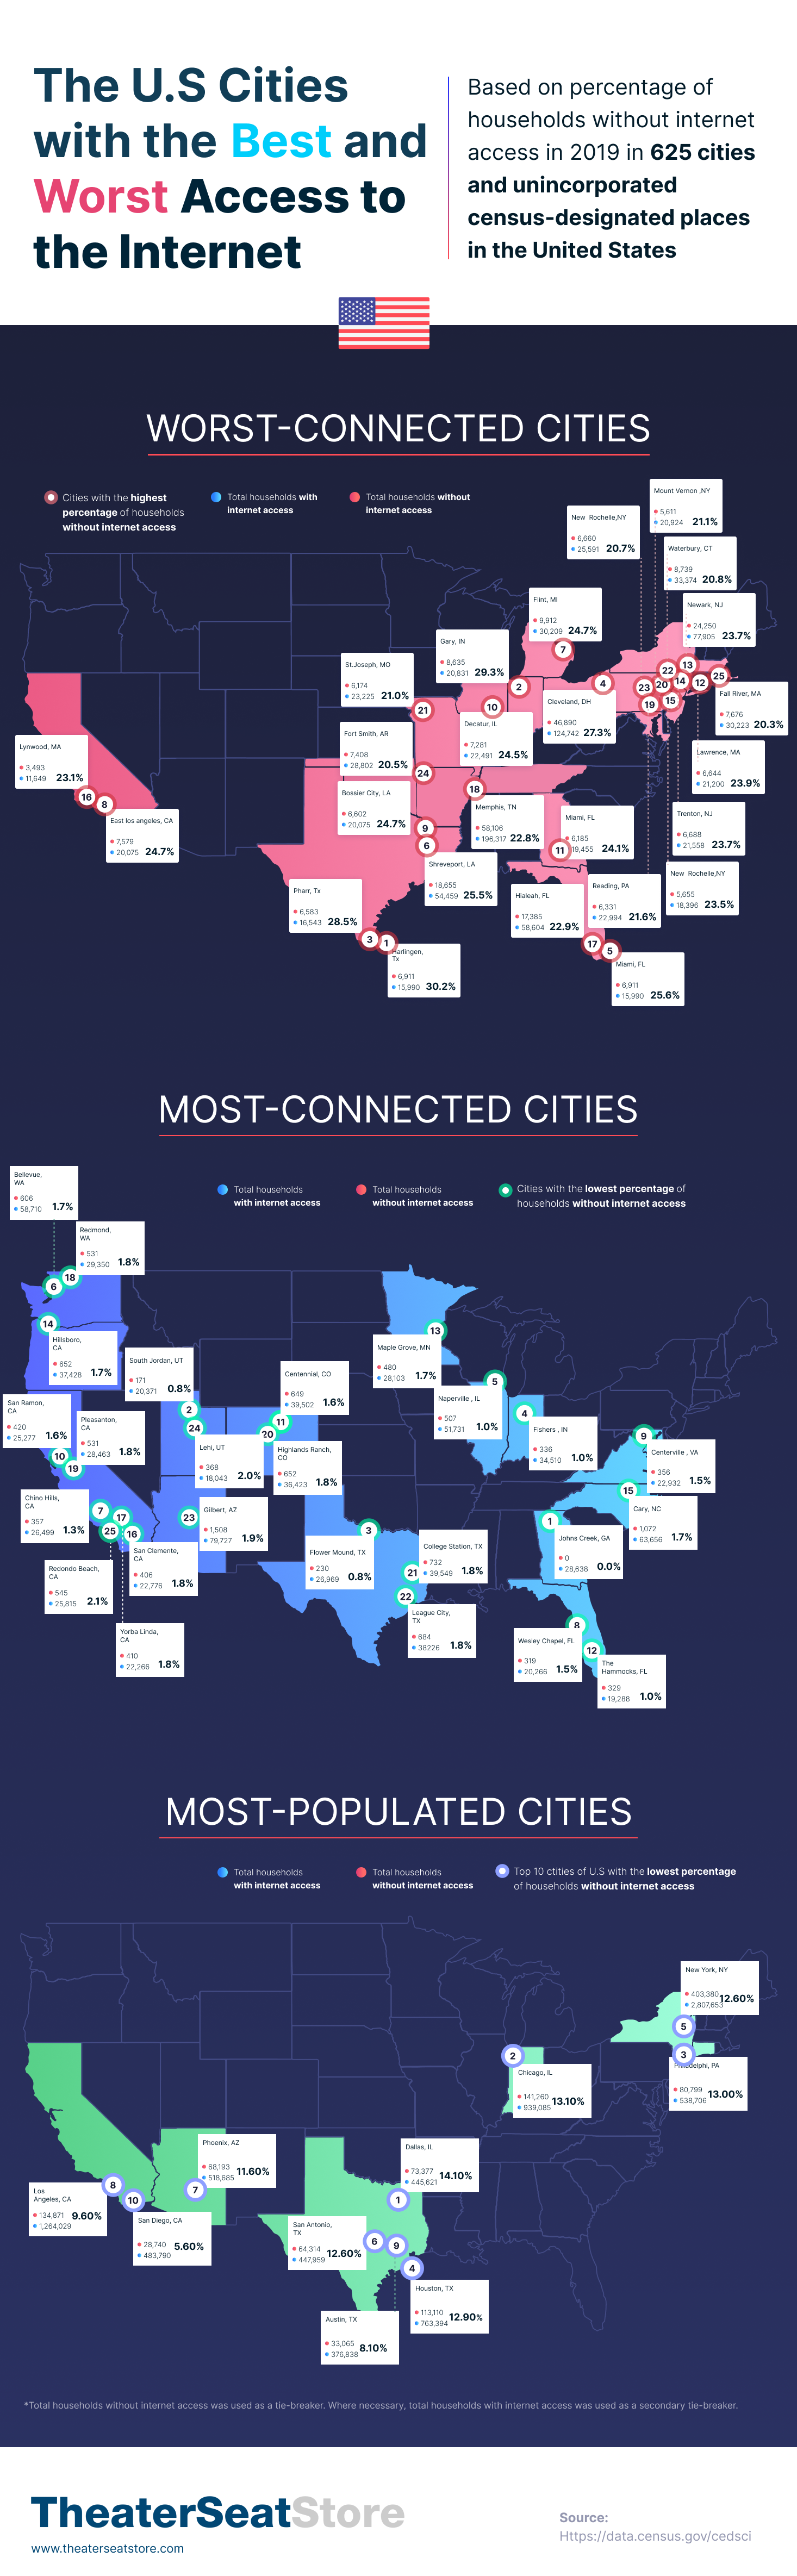 The U.S. Cities with the Best and Worst Internet Access